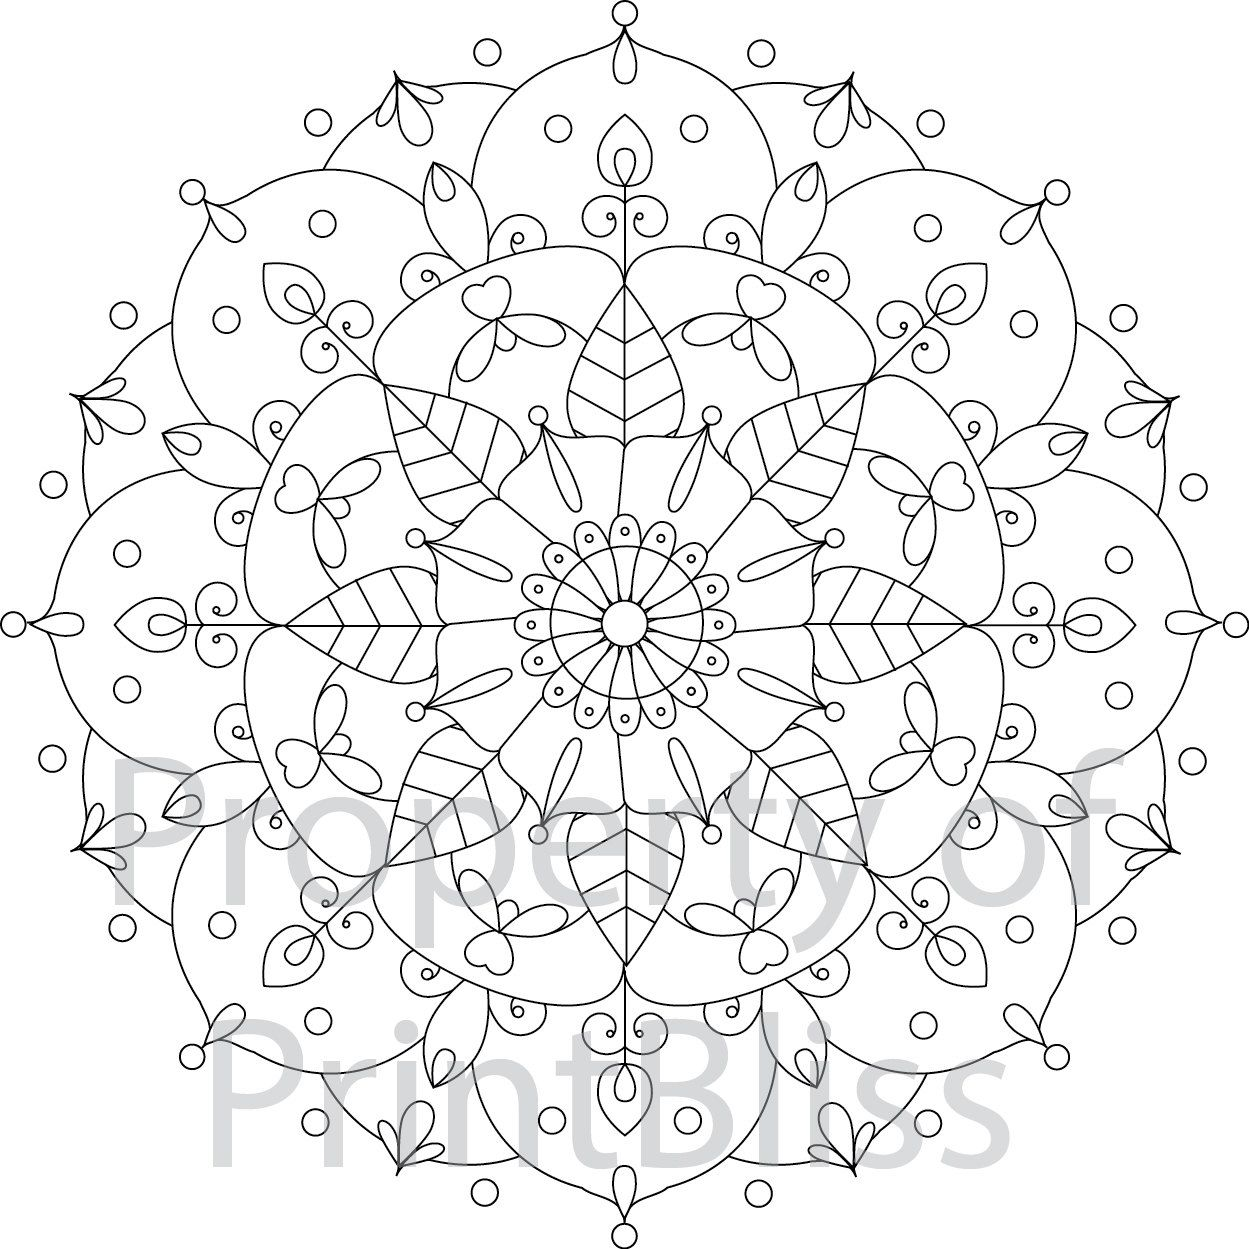 8 Flower Mandala Printable Coloring Page Etsy Mandala Printable Coloring Pages Flower Mandala